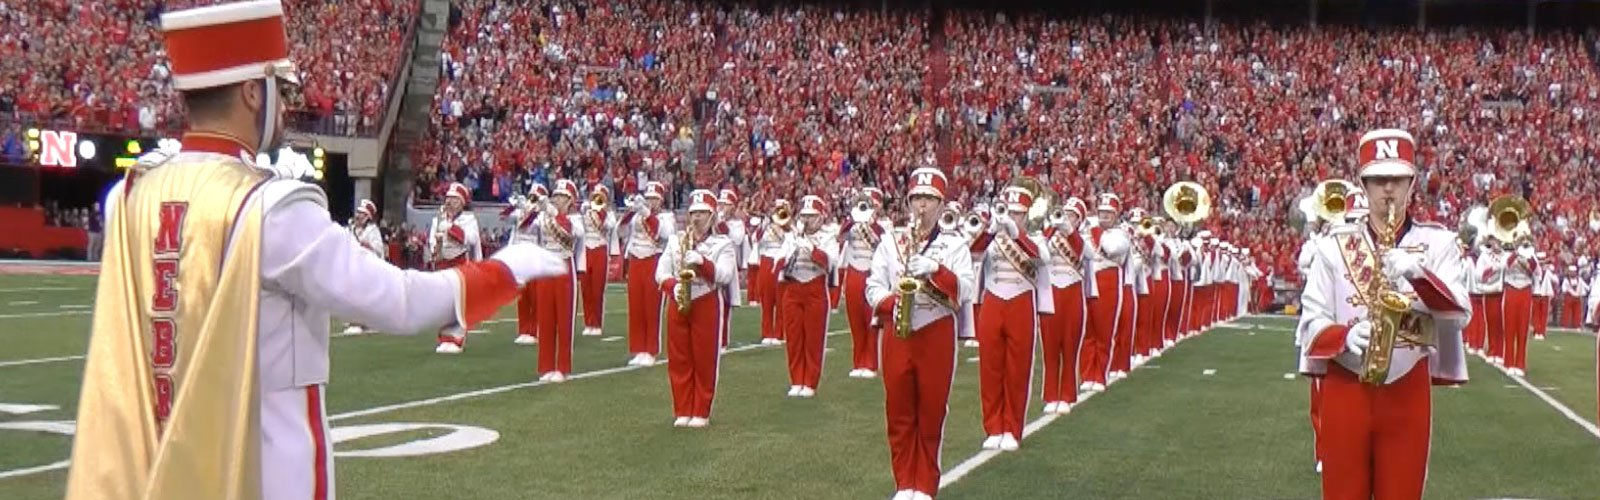 Husker Marching Band on the Field with Civil Engineering Major Austin Moran leading them.